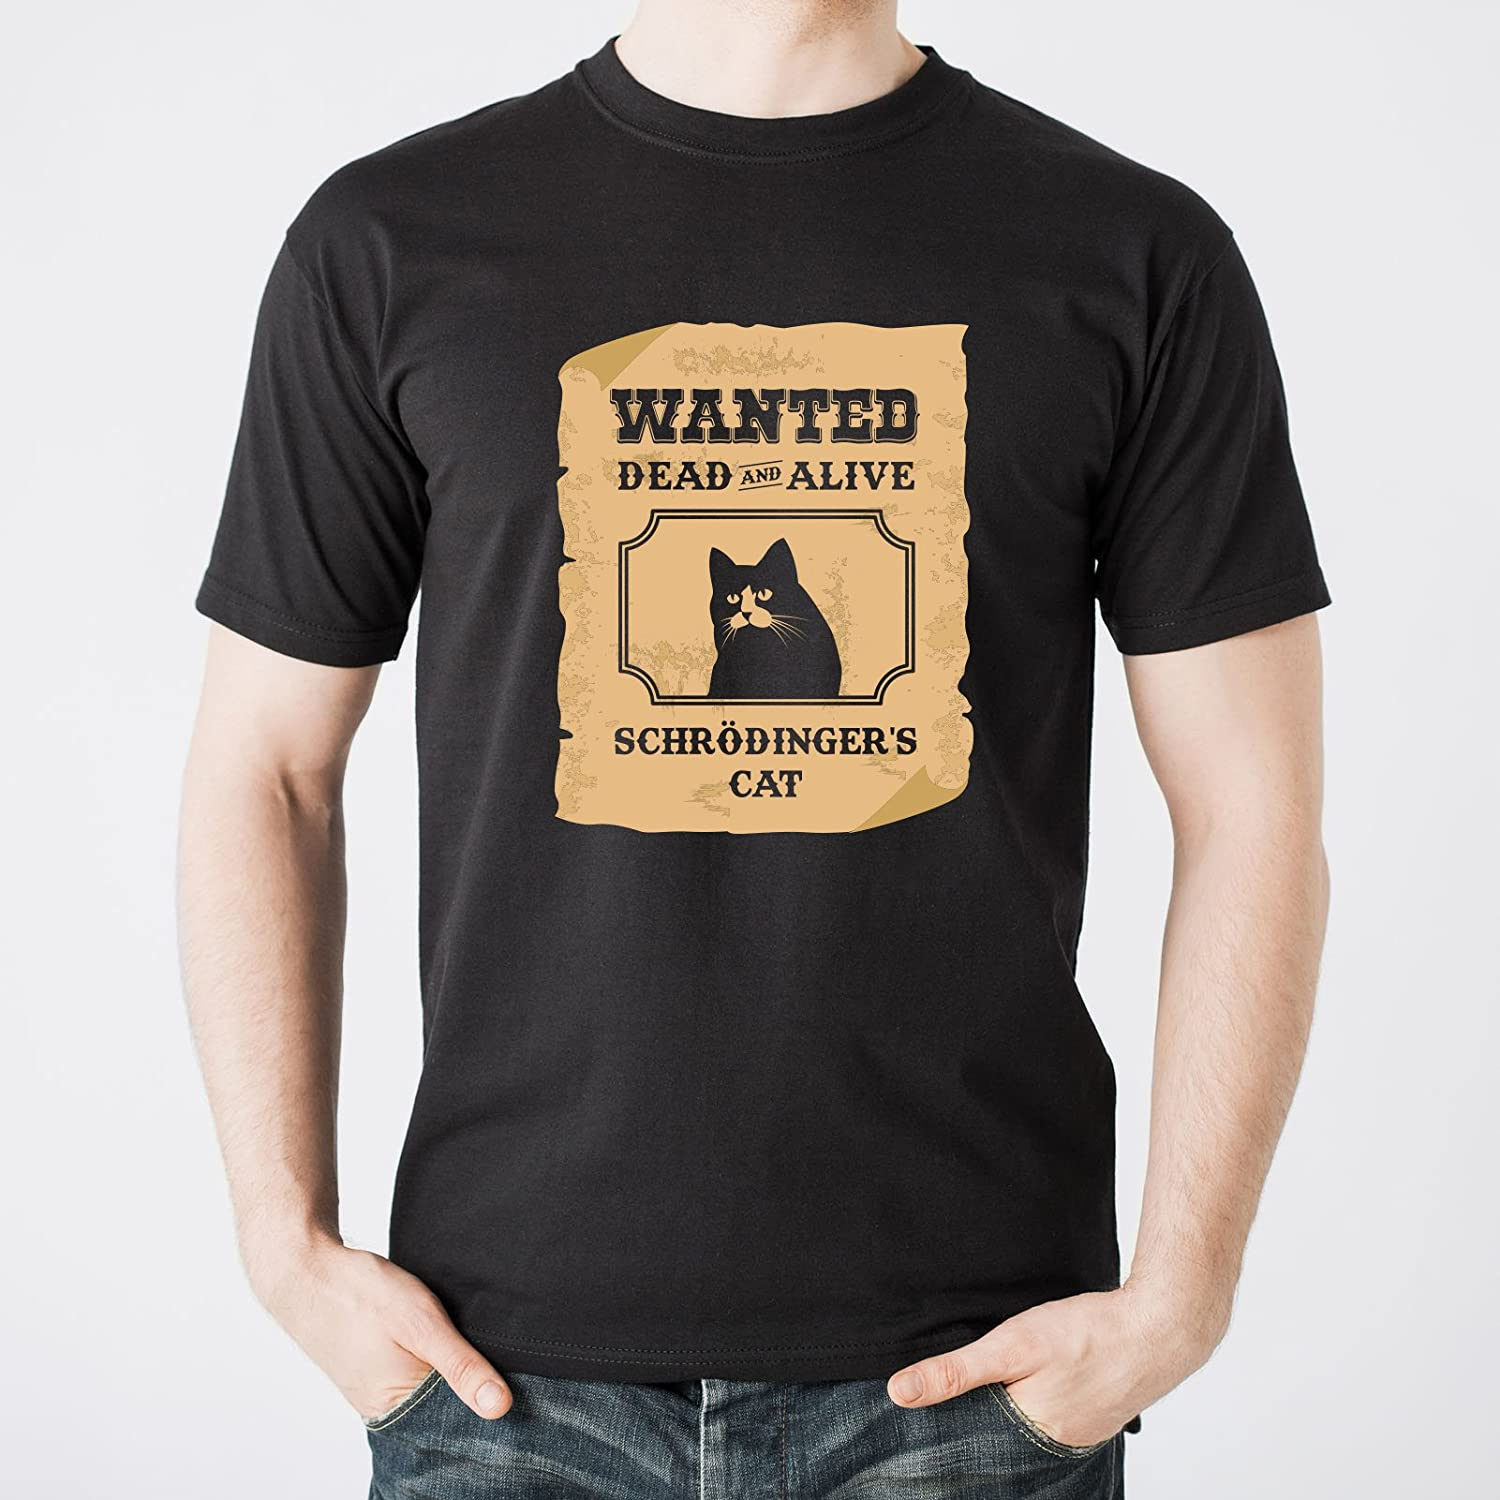 Wanted Dead and Alive Schrodingers Cat Basic Cotton T-Shirt